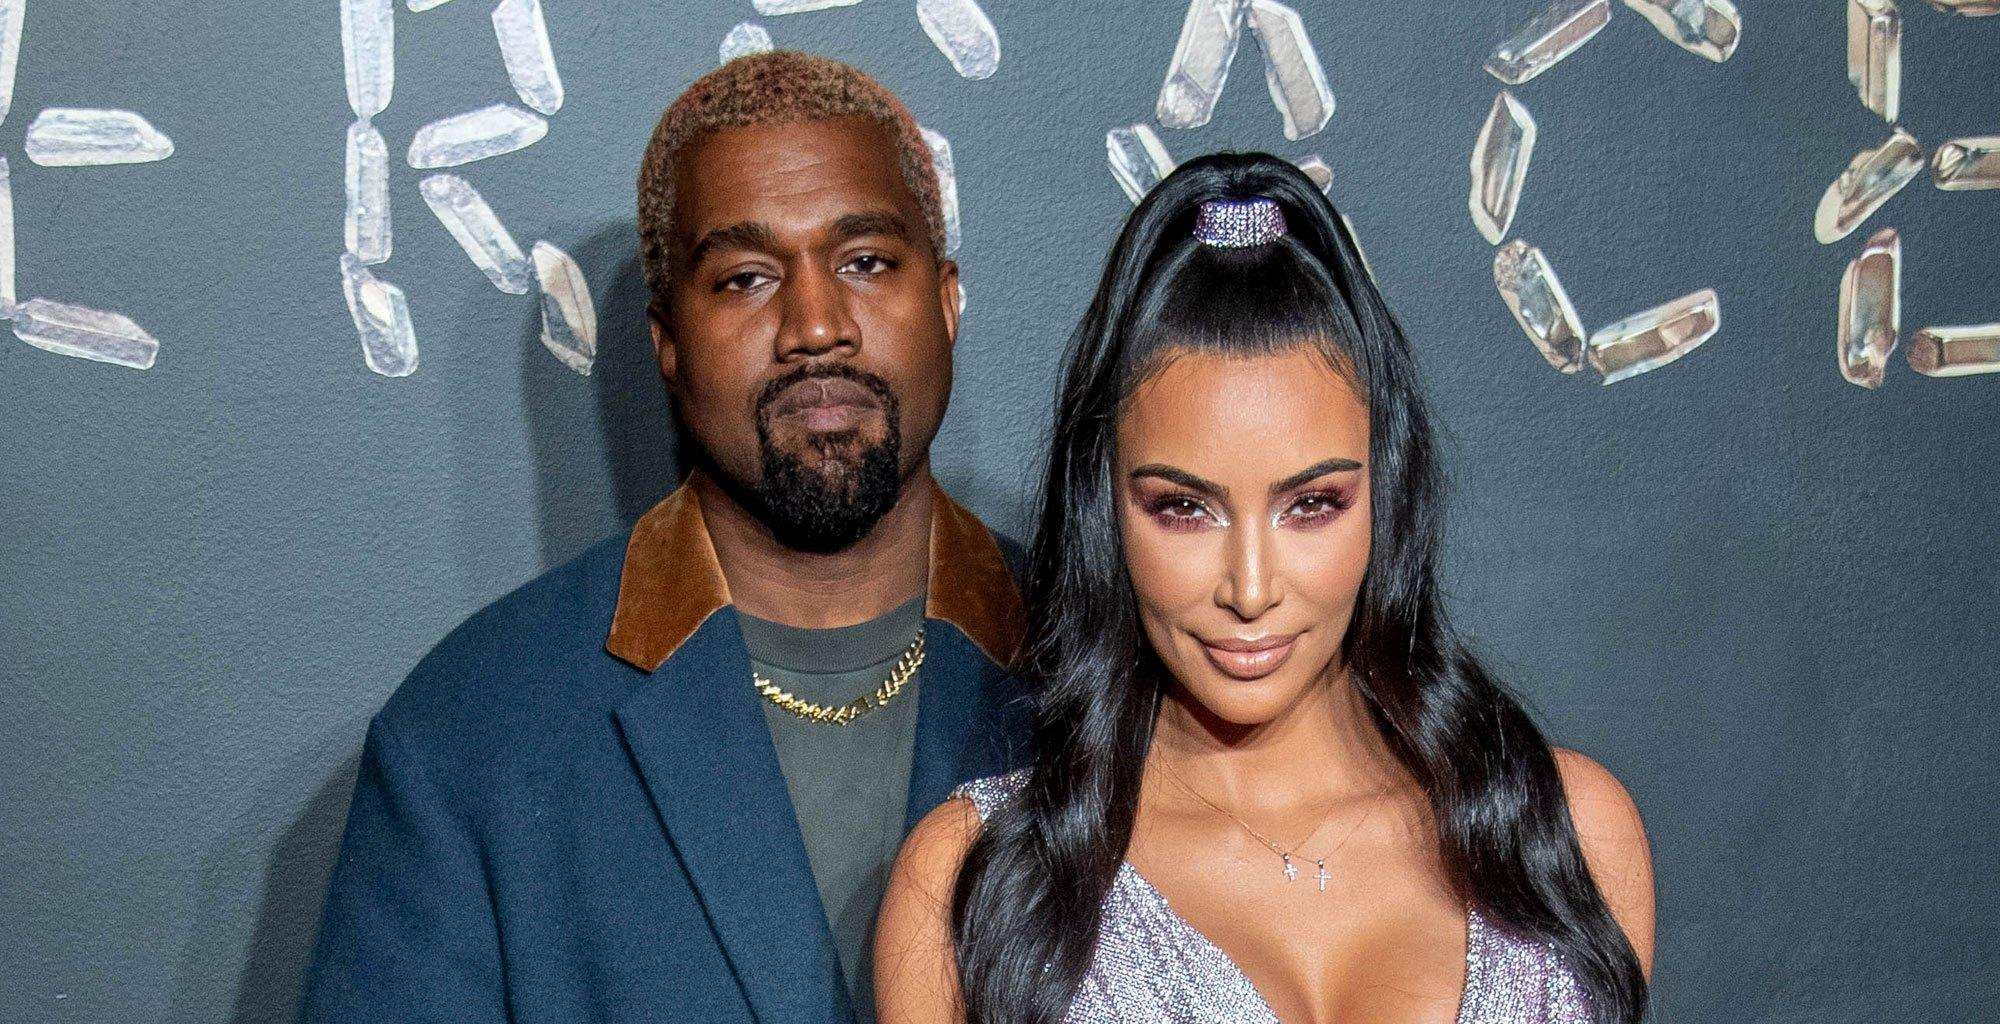 KUWTK: Kim Kardashian Reportedly Really 'Patient' With Kanye West As Things Are Starting To Improve!